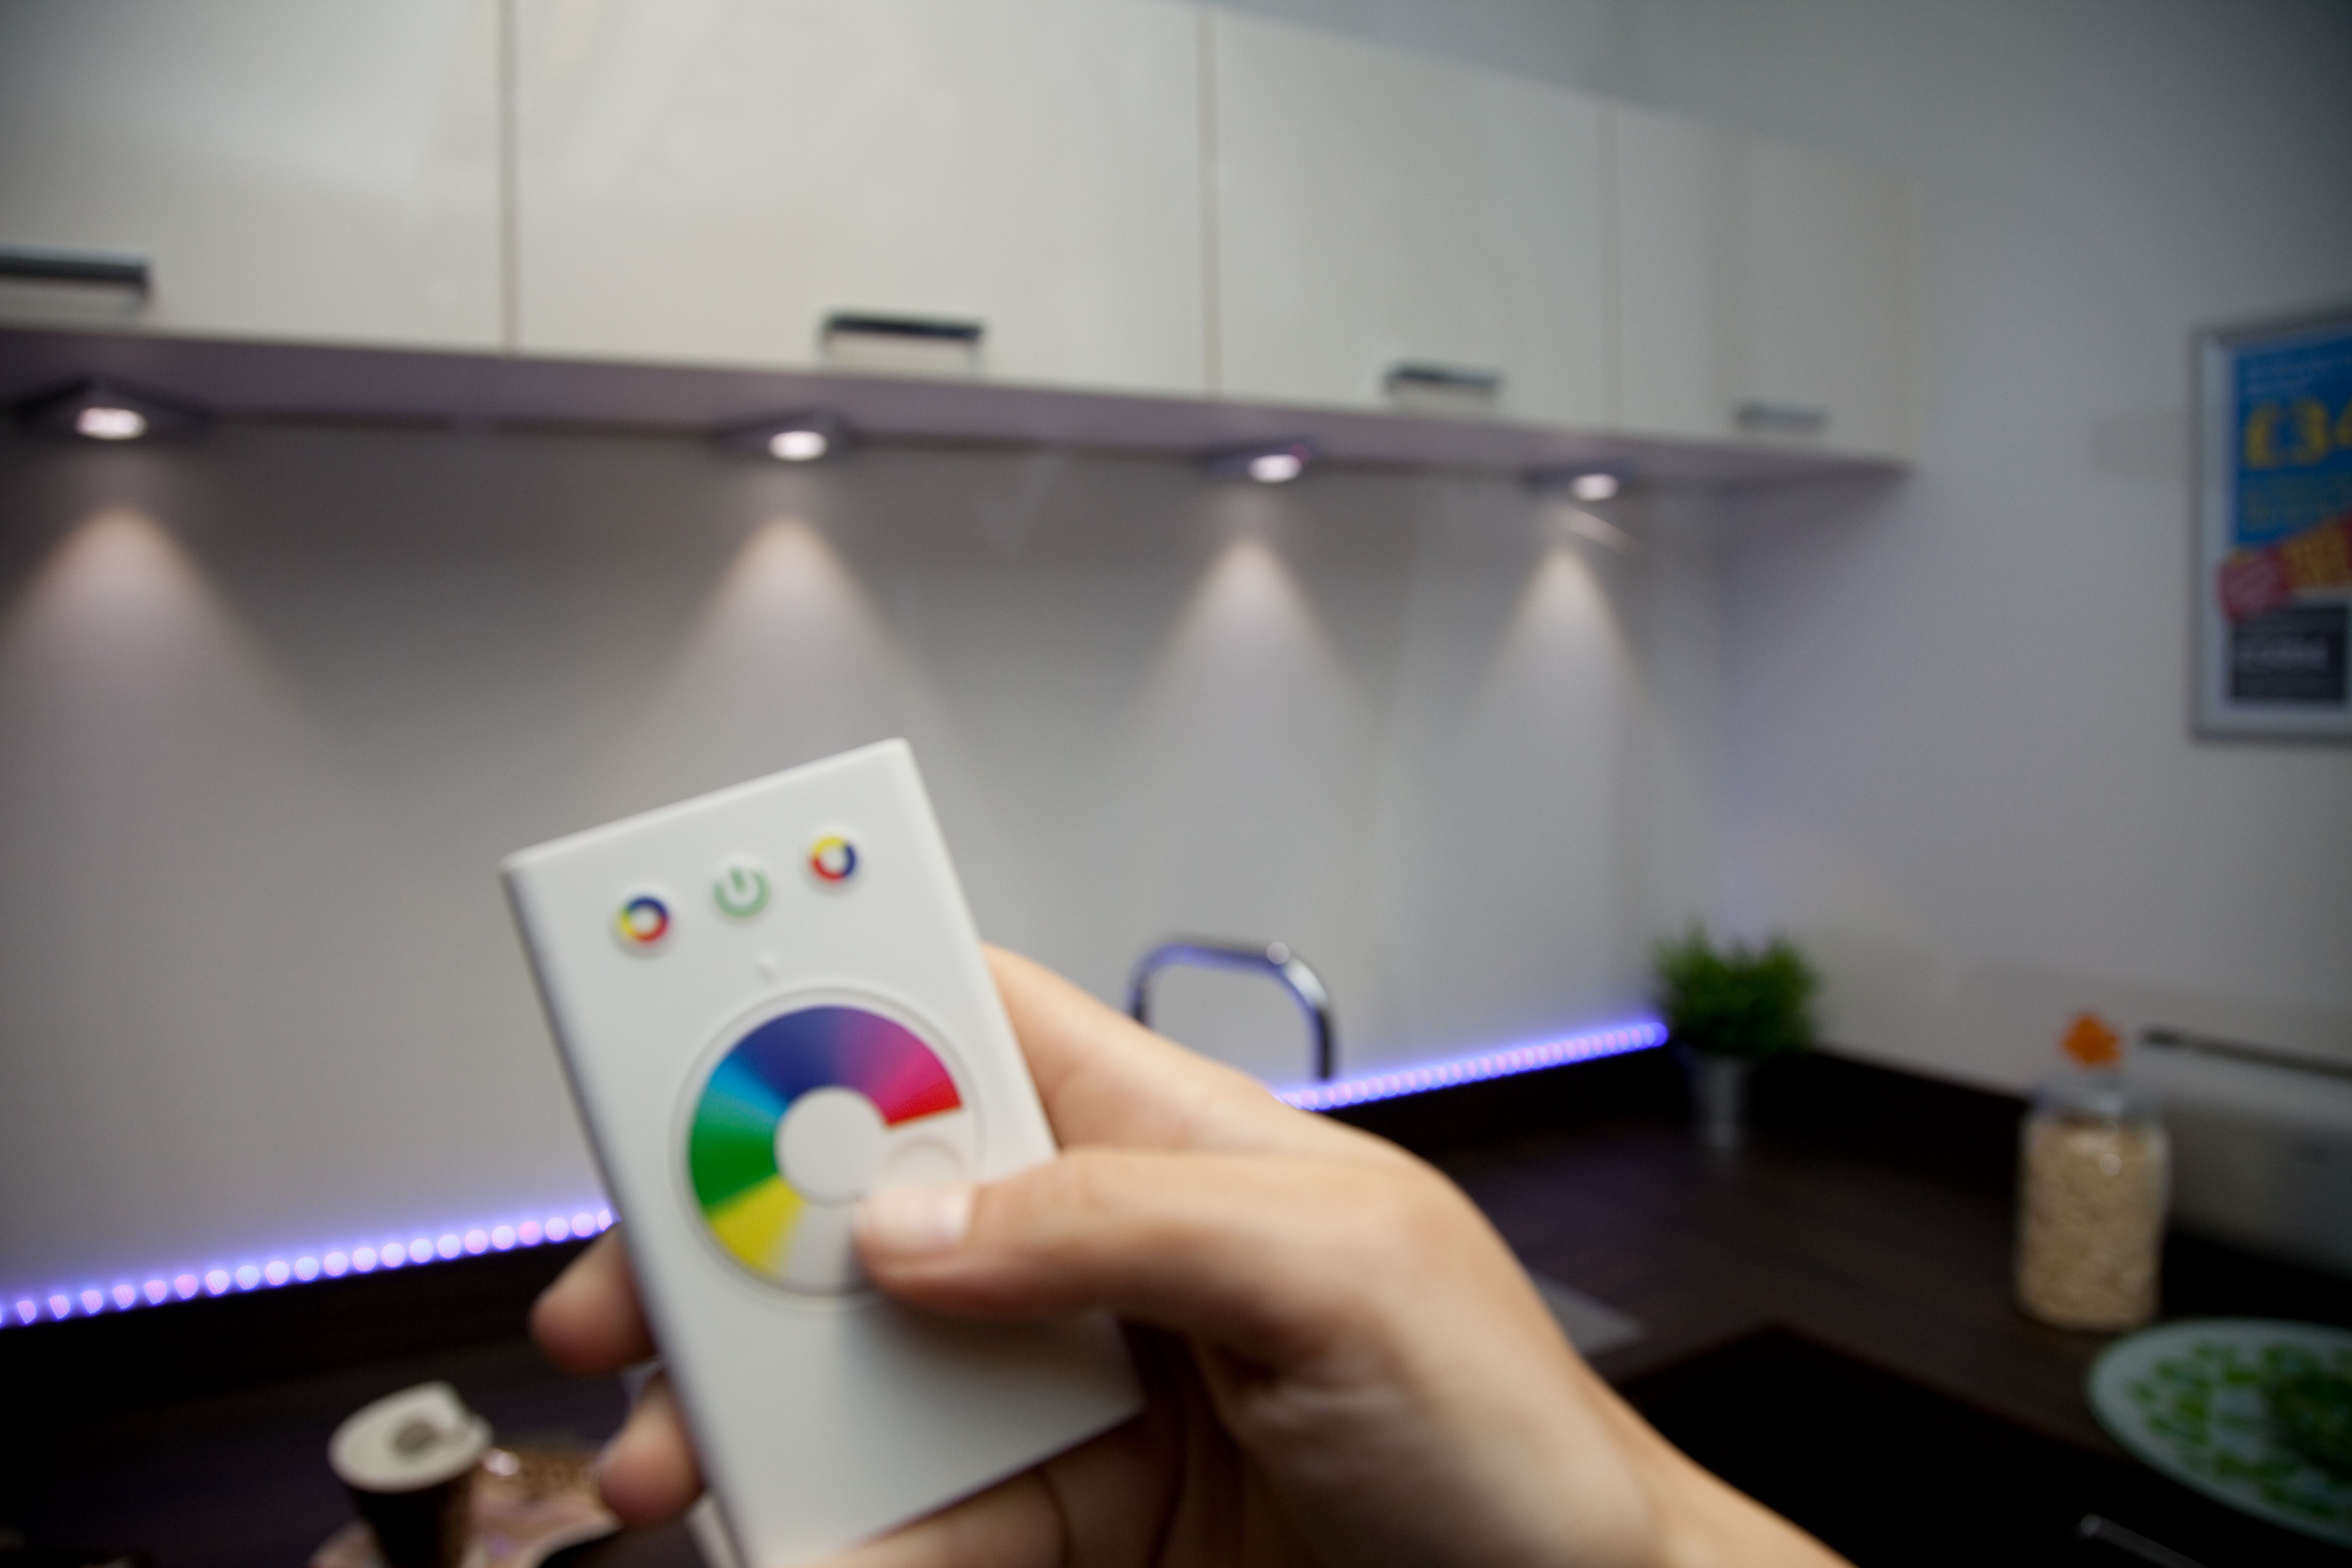 led kitchen light fixtures Change the mood by changing the colour colour changing LED lighting helps set ambiance in